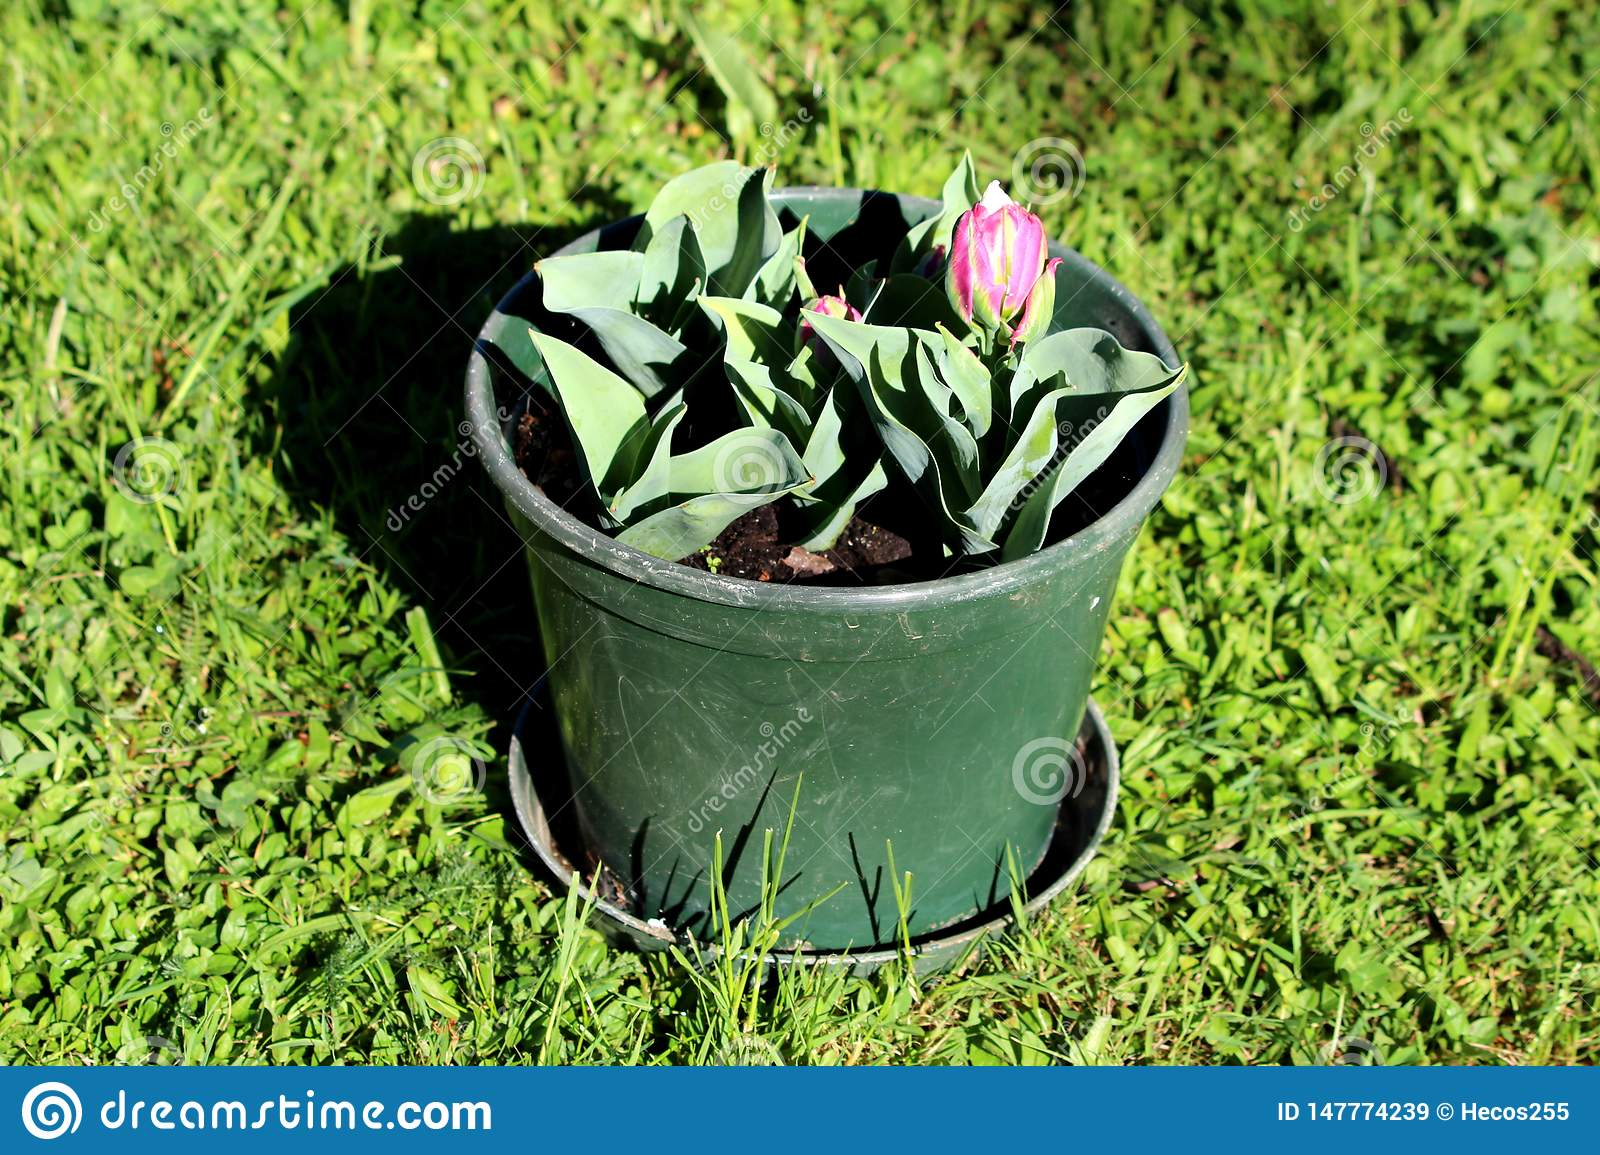 Ice cream tulip plants planted in small plastic green flower pot in local garden starting to open and bloom with pointy dark green